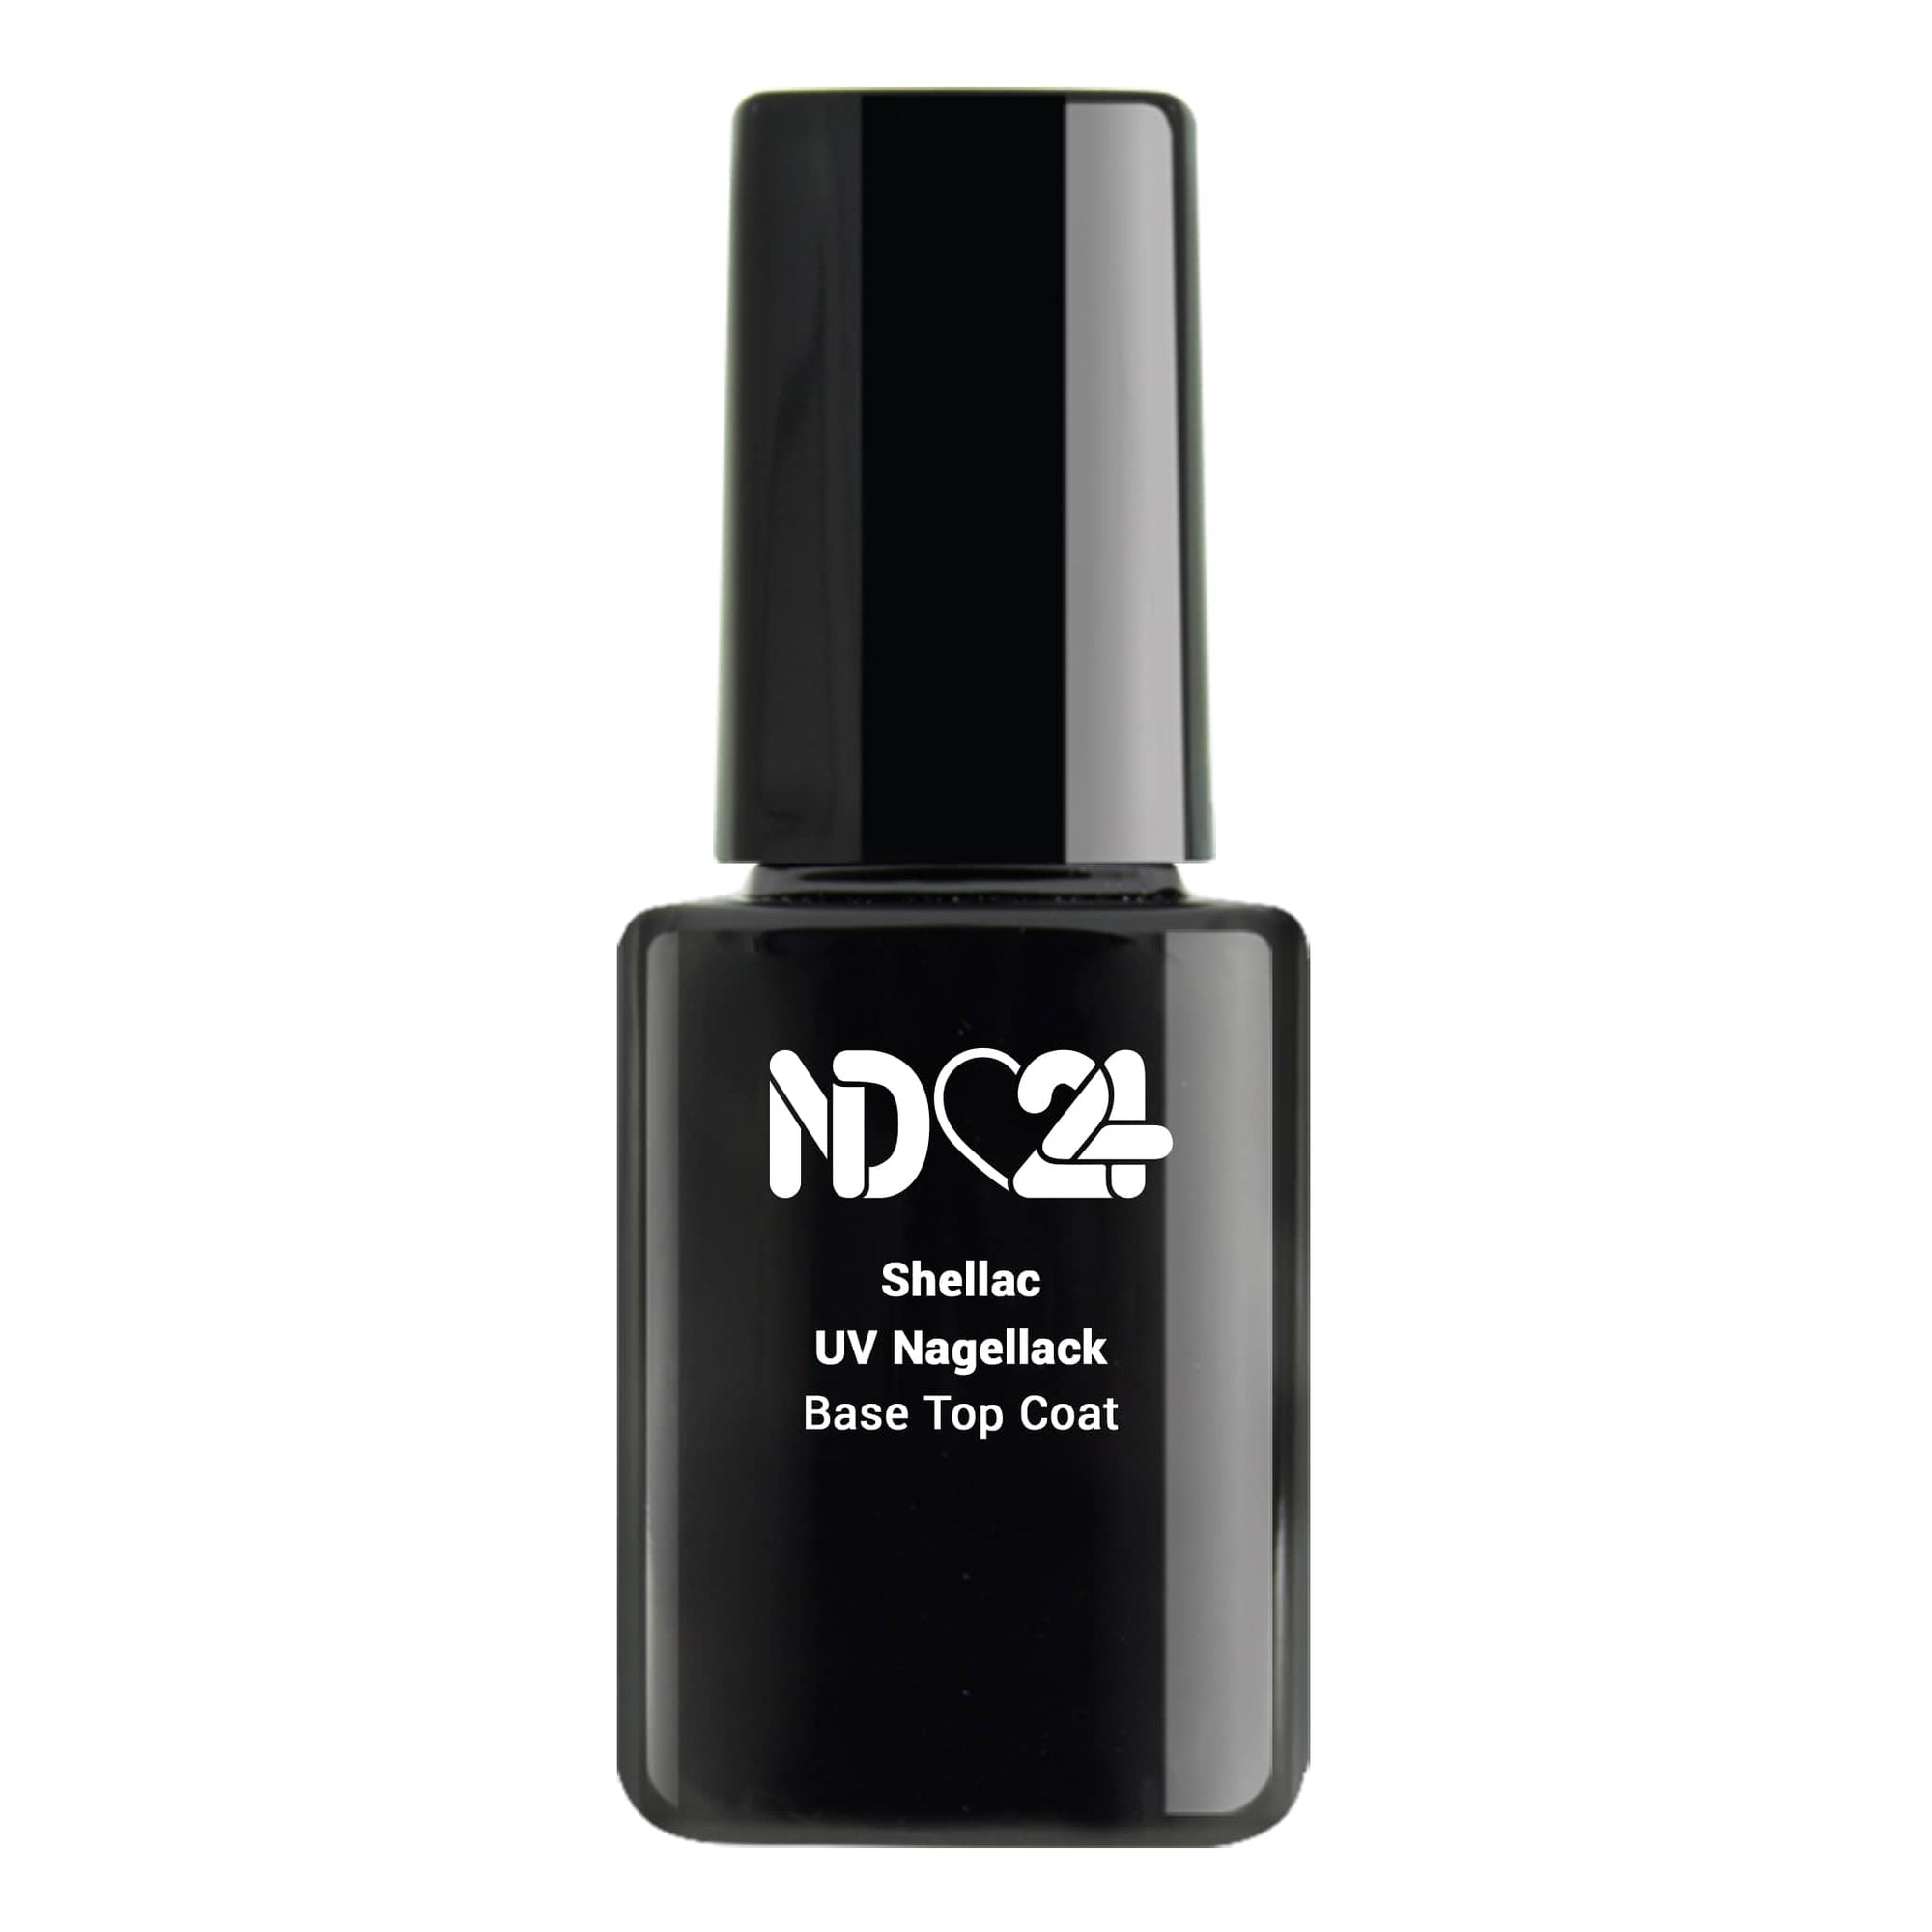 Shellac UV Nagellack Base Top Coat